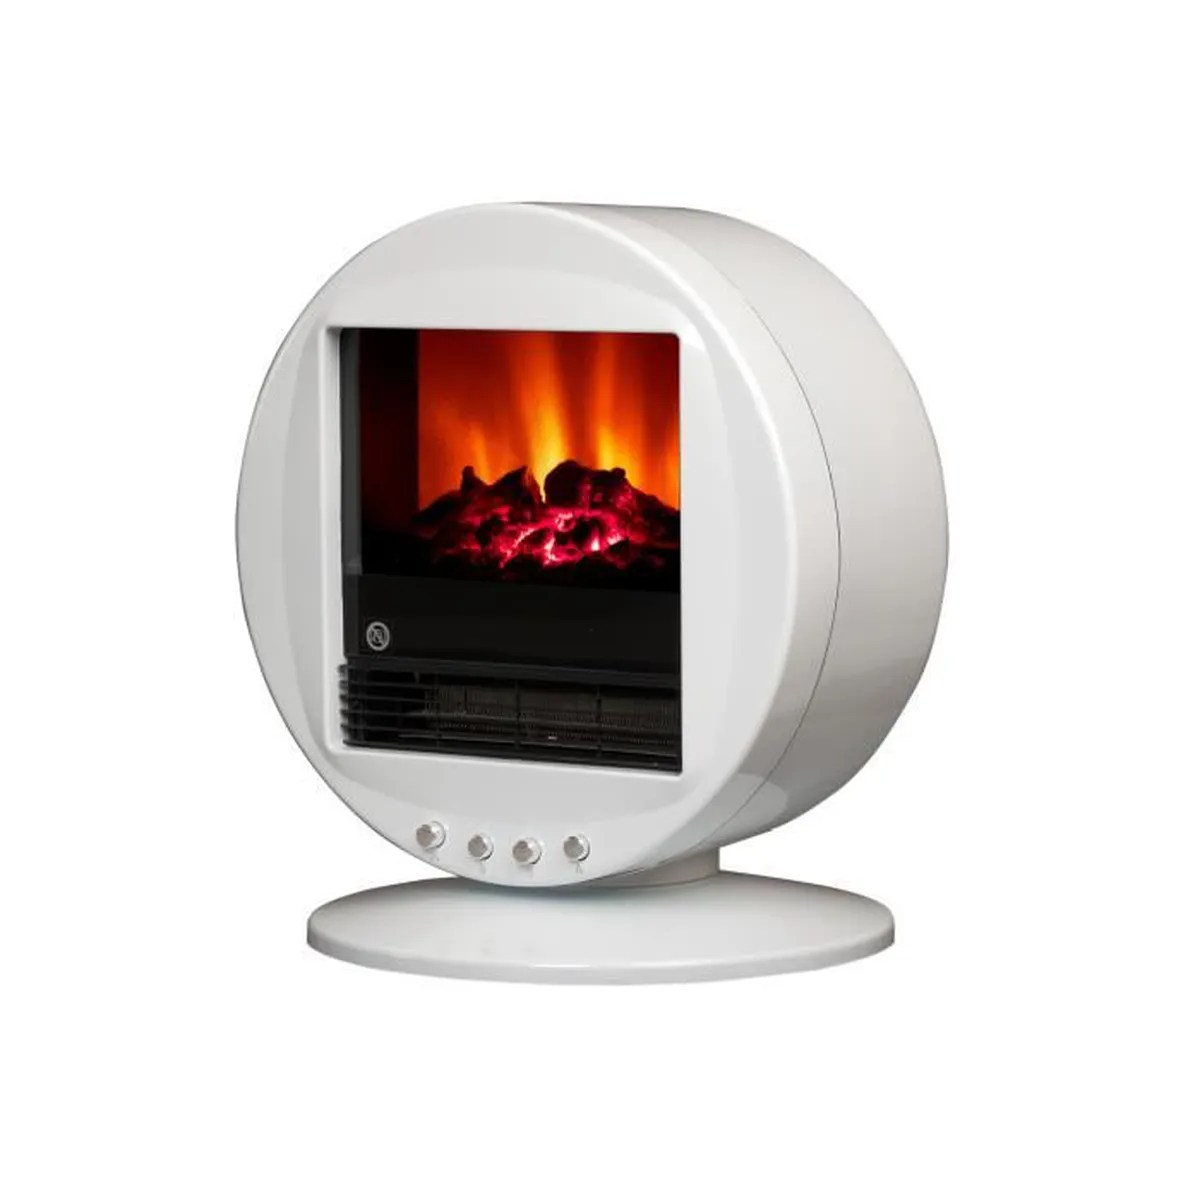 Cheminee Moderne Ronde Cheminee Electrique 70 S Blanche Ronde 2000w Leds Achat Vente